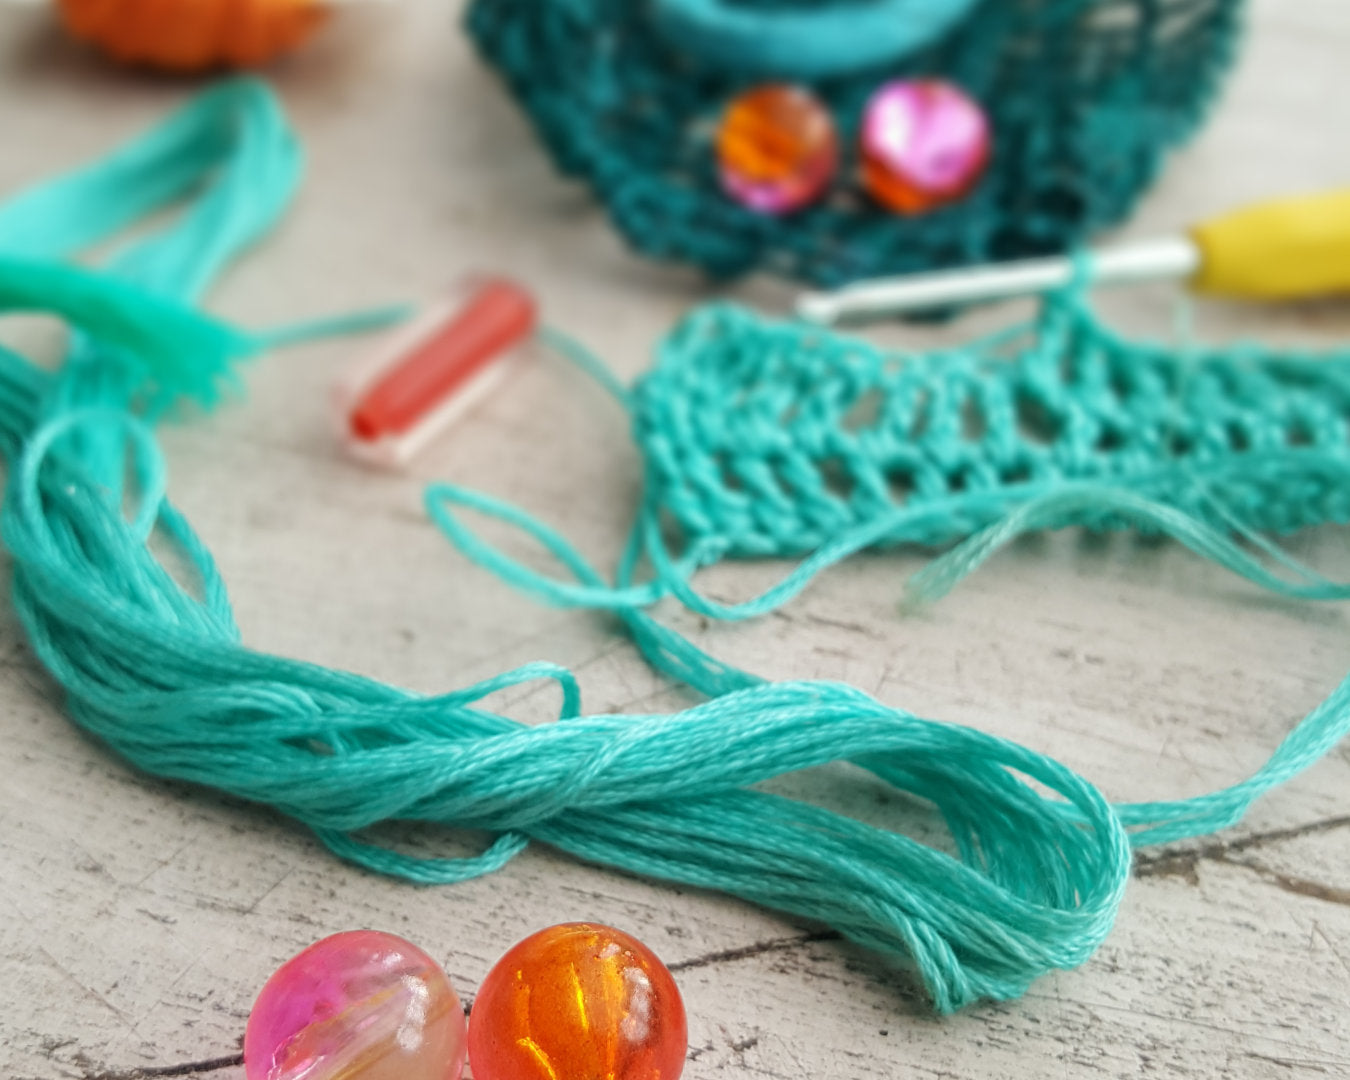 beads and crochet materials